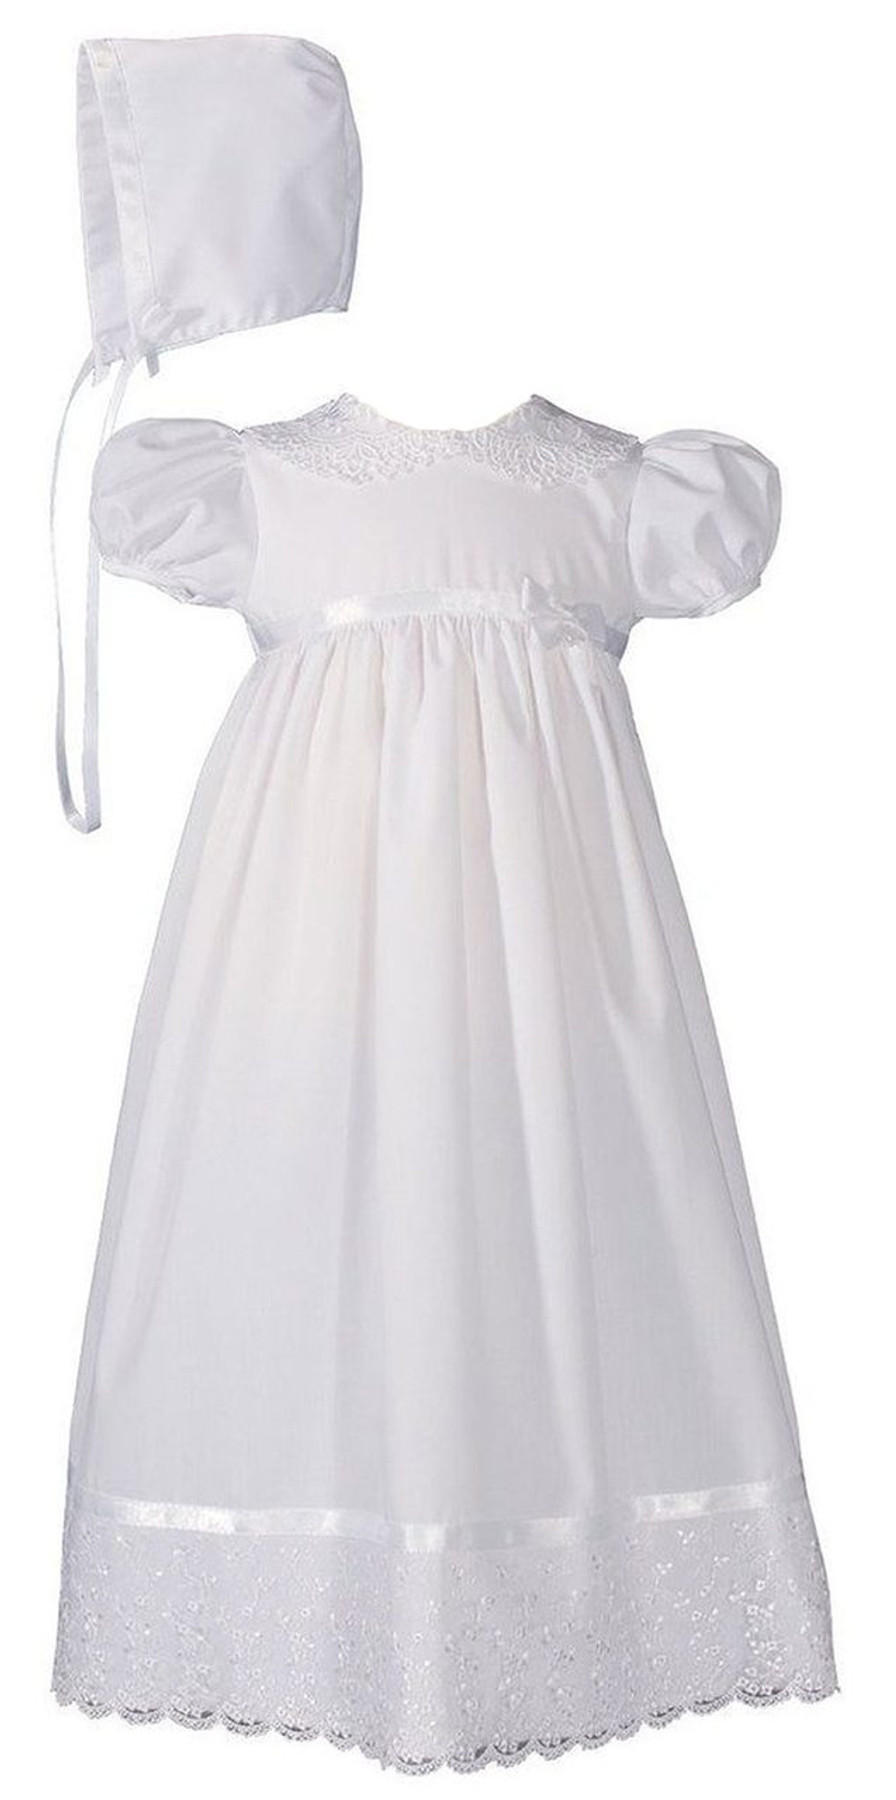 Christening Baptism Gown with Lace Collar and Hem, Girls 24″ Poly Cotton